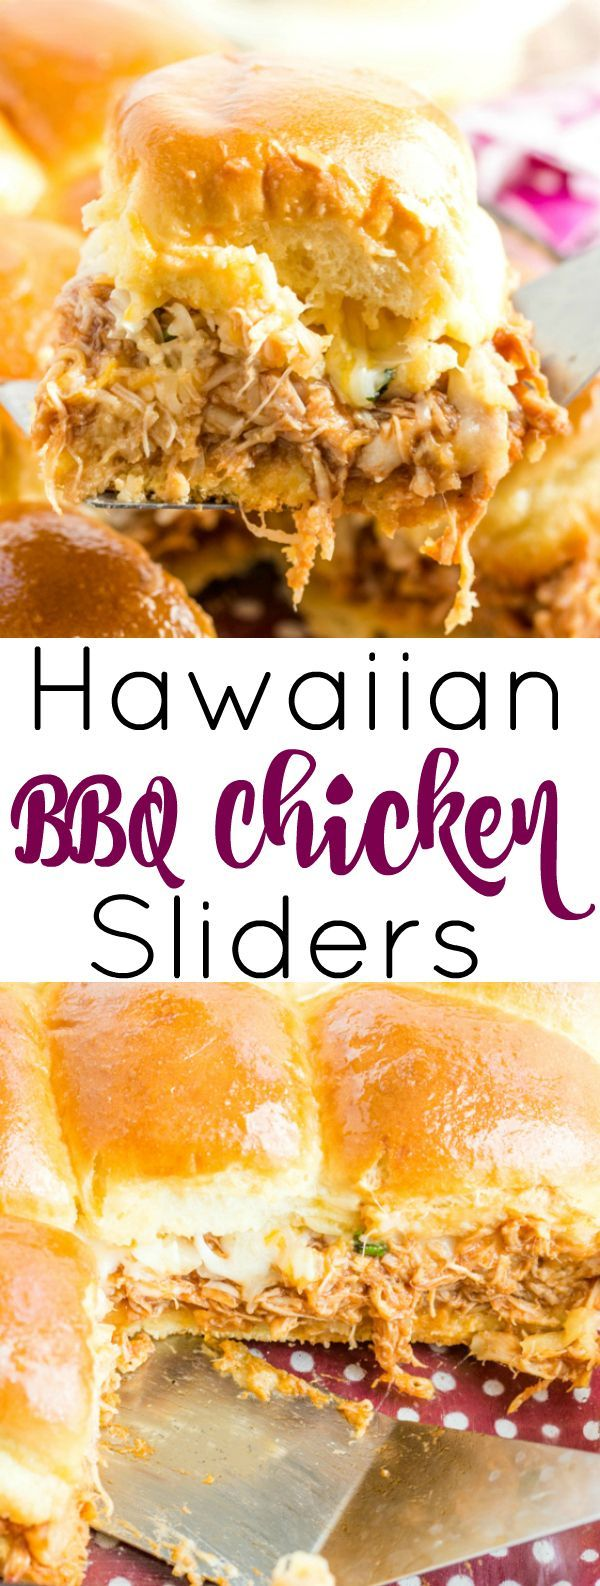 Enjoy game day with these sweet and tangy Hawaiian BBQ Chicken Sliders full of bbq chicken, pineapple, onions, cilantro and cheeses. #Bbqchicken